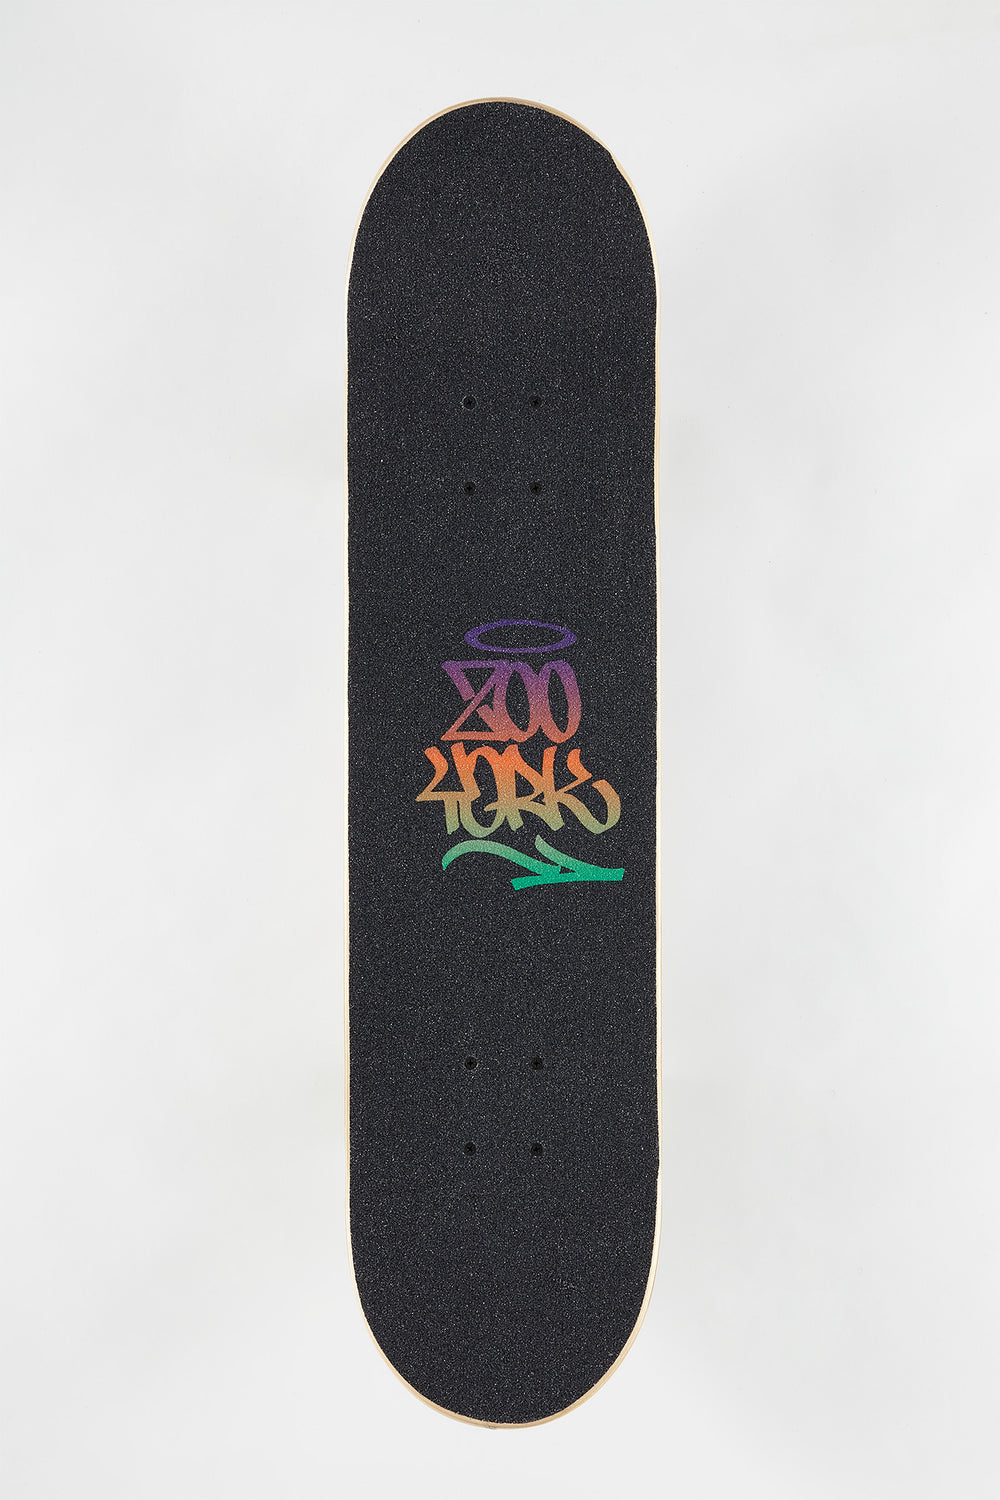 Skateboard Zoo York Drama 7.75